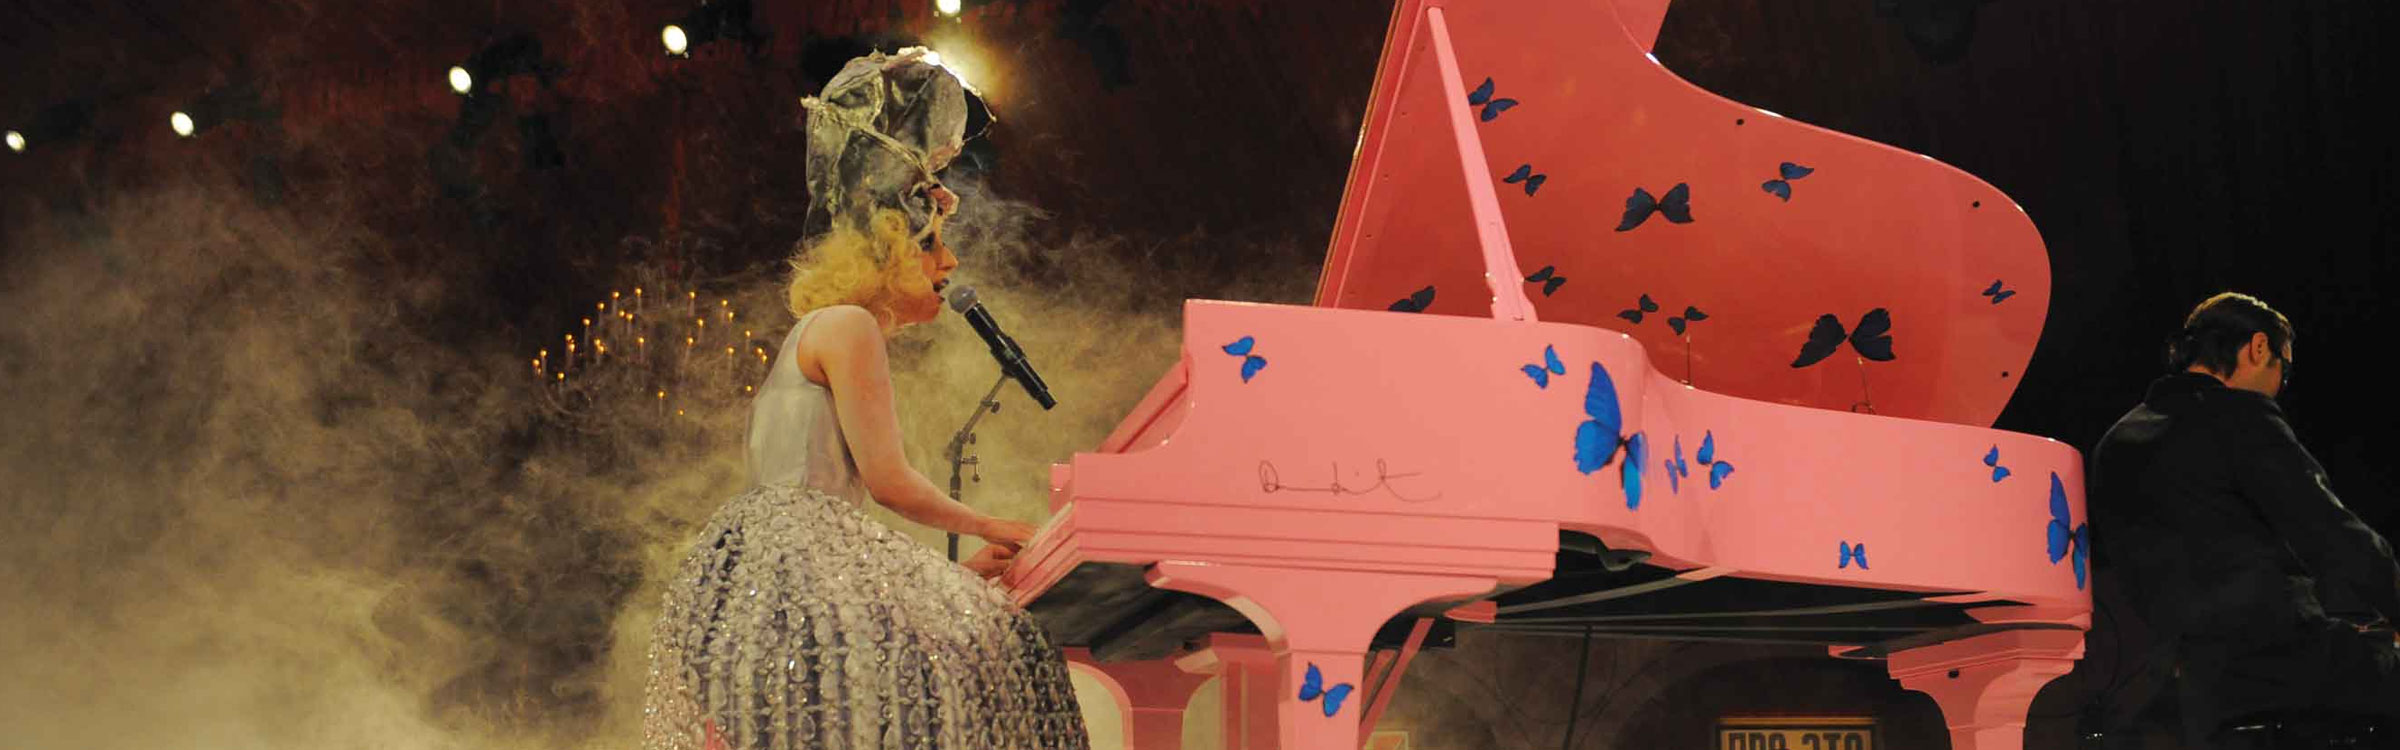 Lady gaga piano header